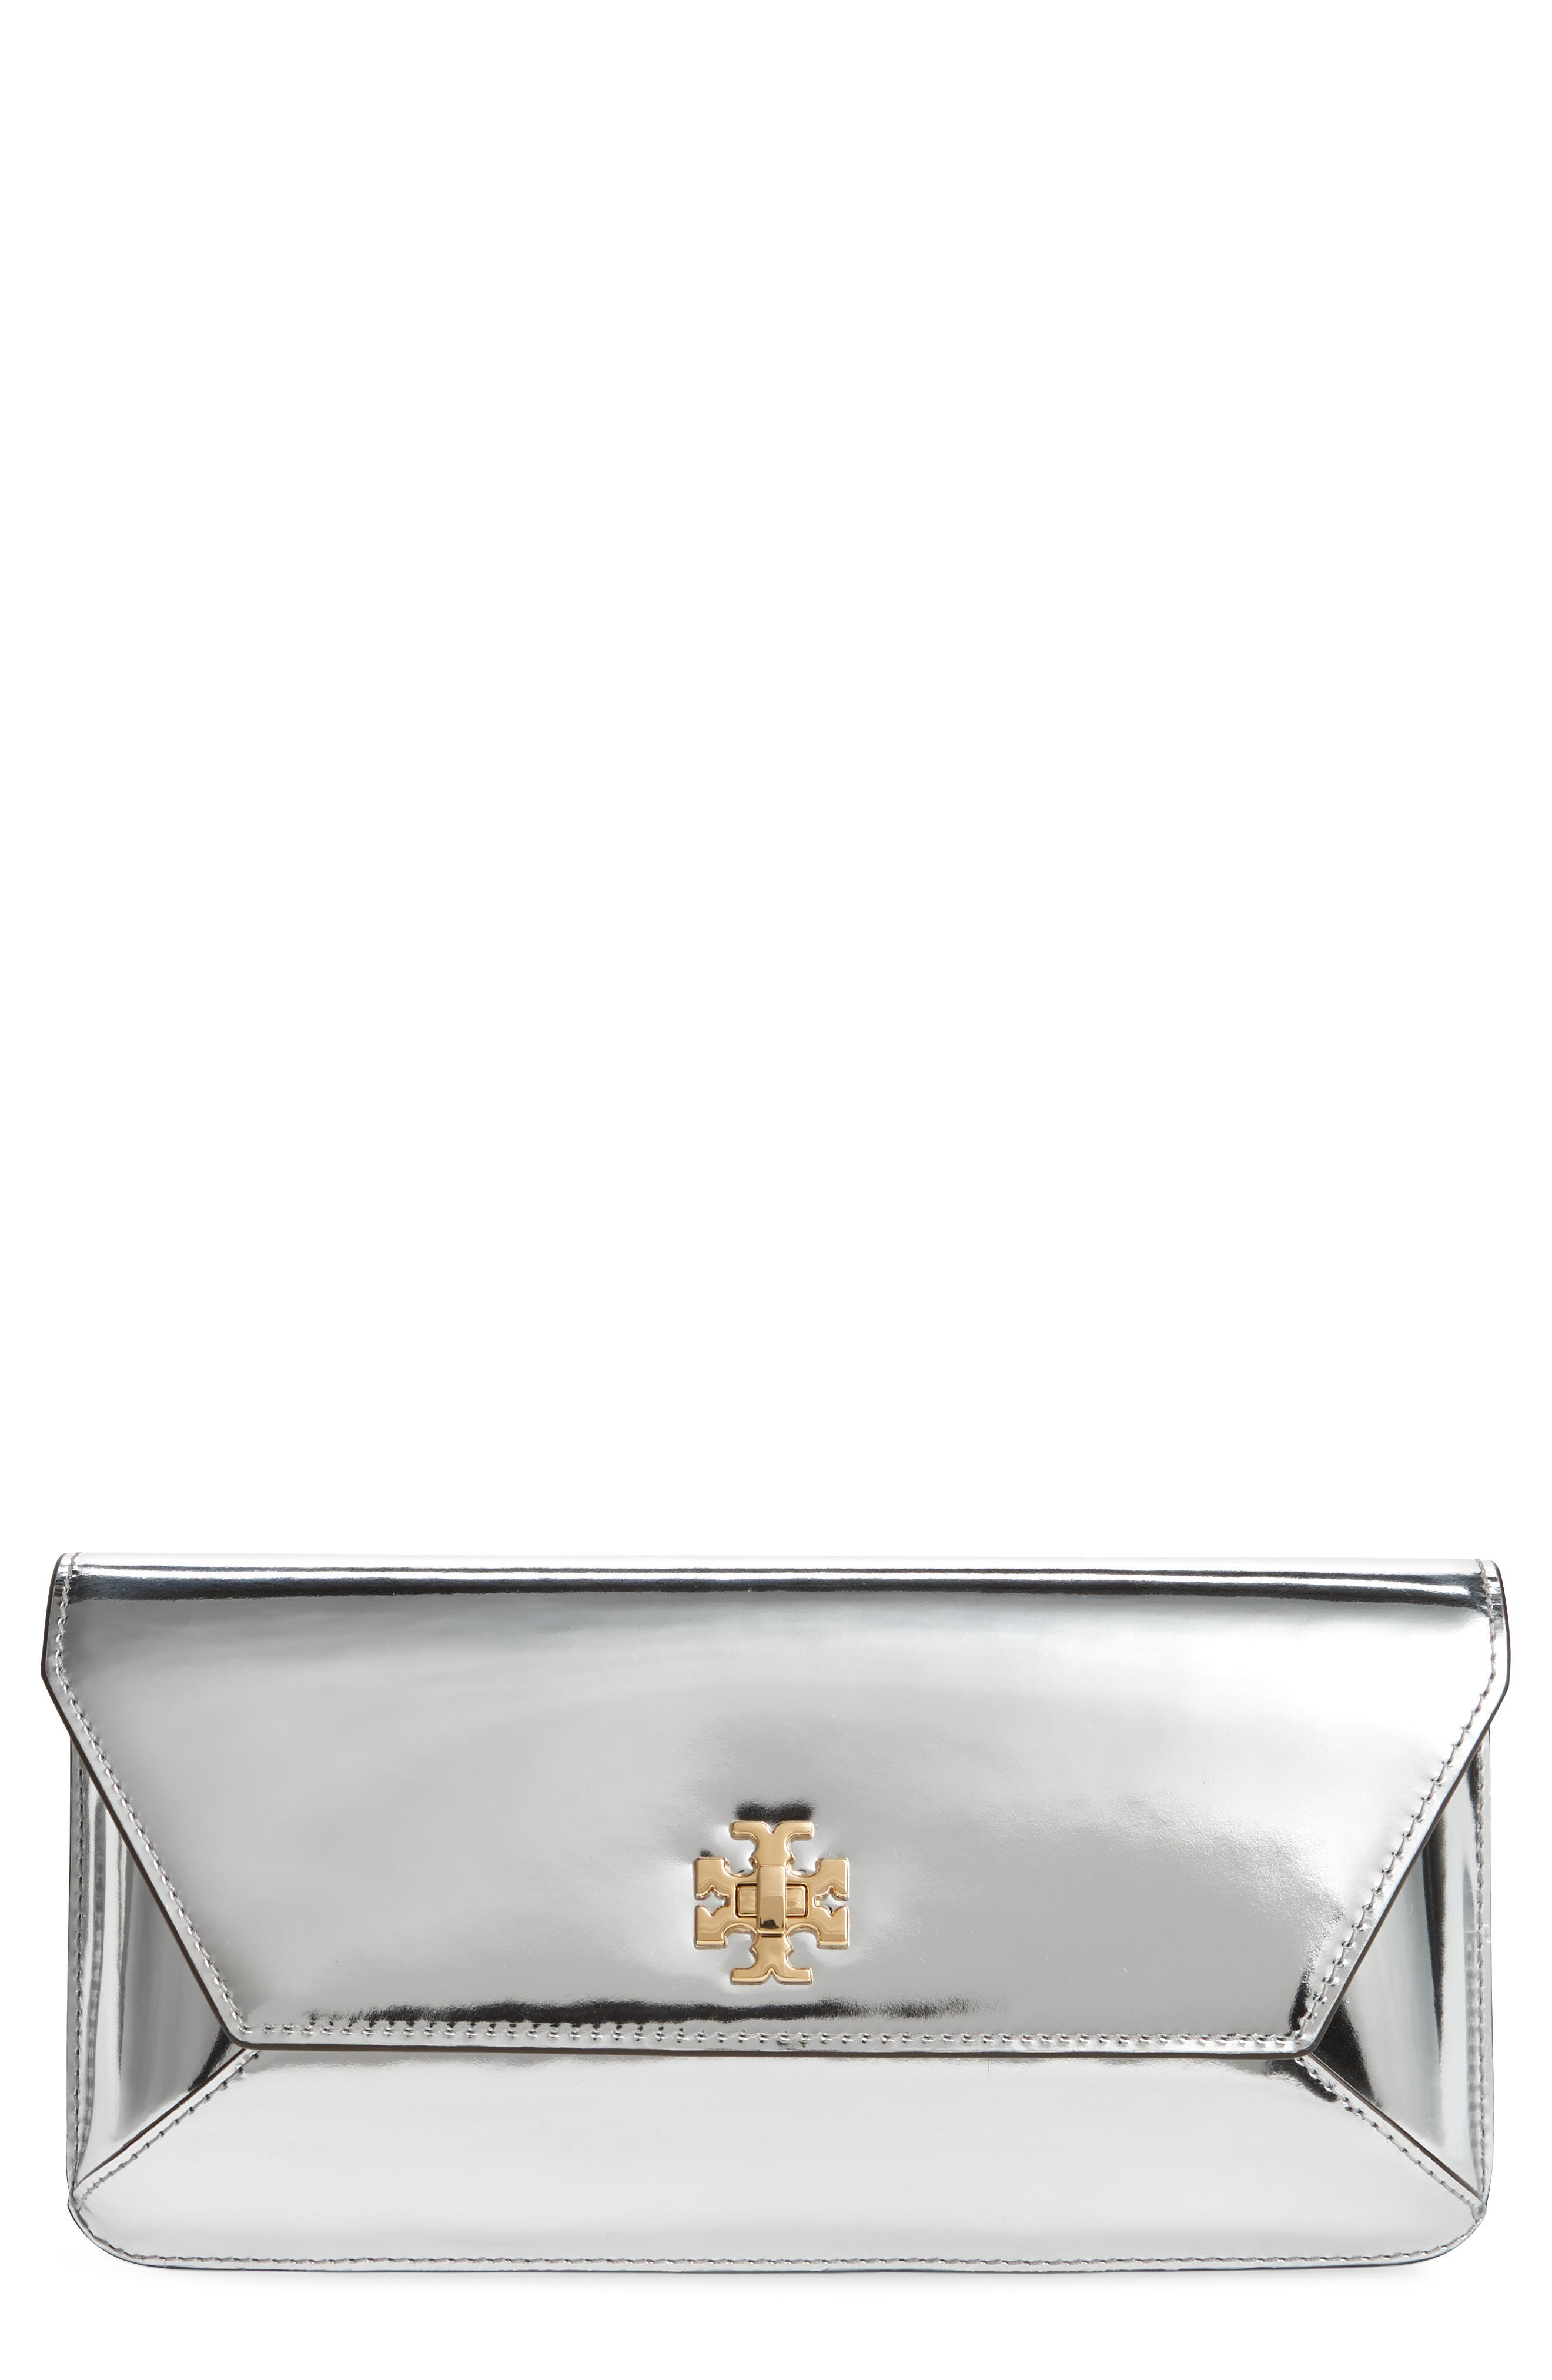 TORY BURCH Kira Leather Envelope Clutch, Main, color, MIRROR METALLIC SILVER